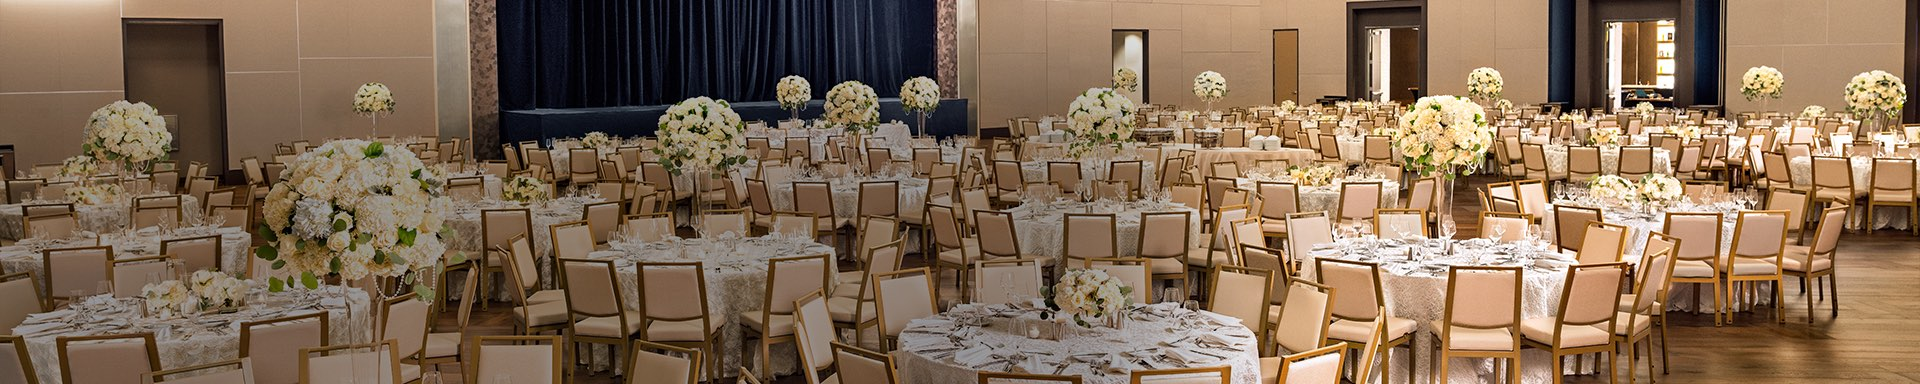 cropped view of wedding venue tables